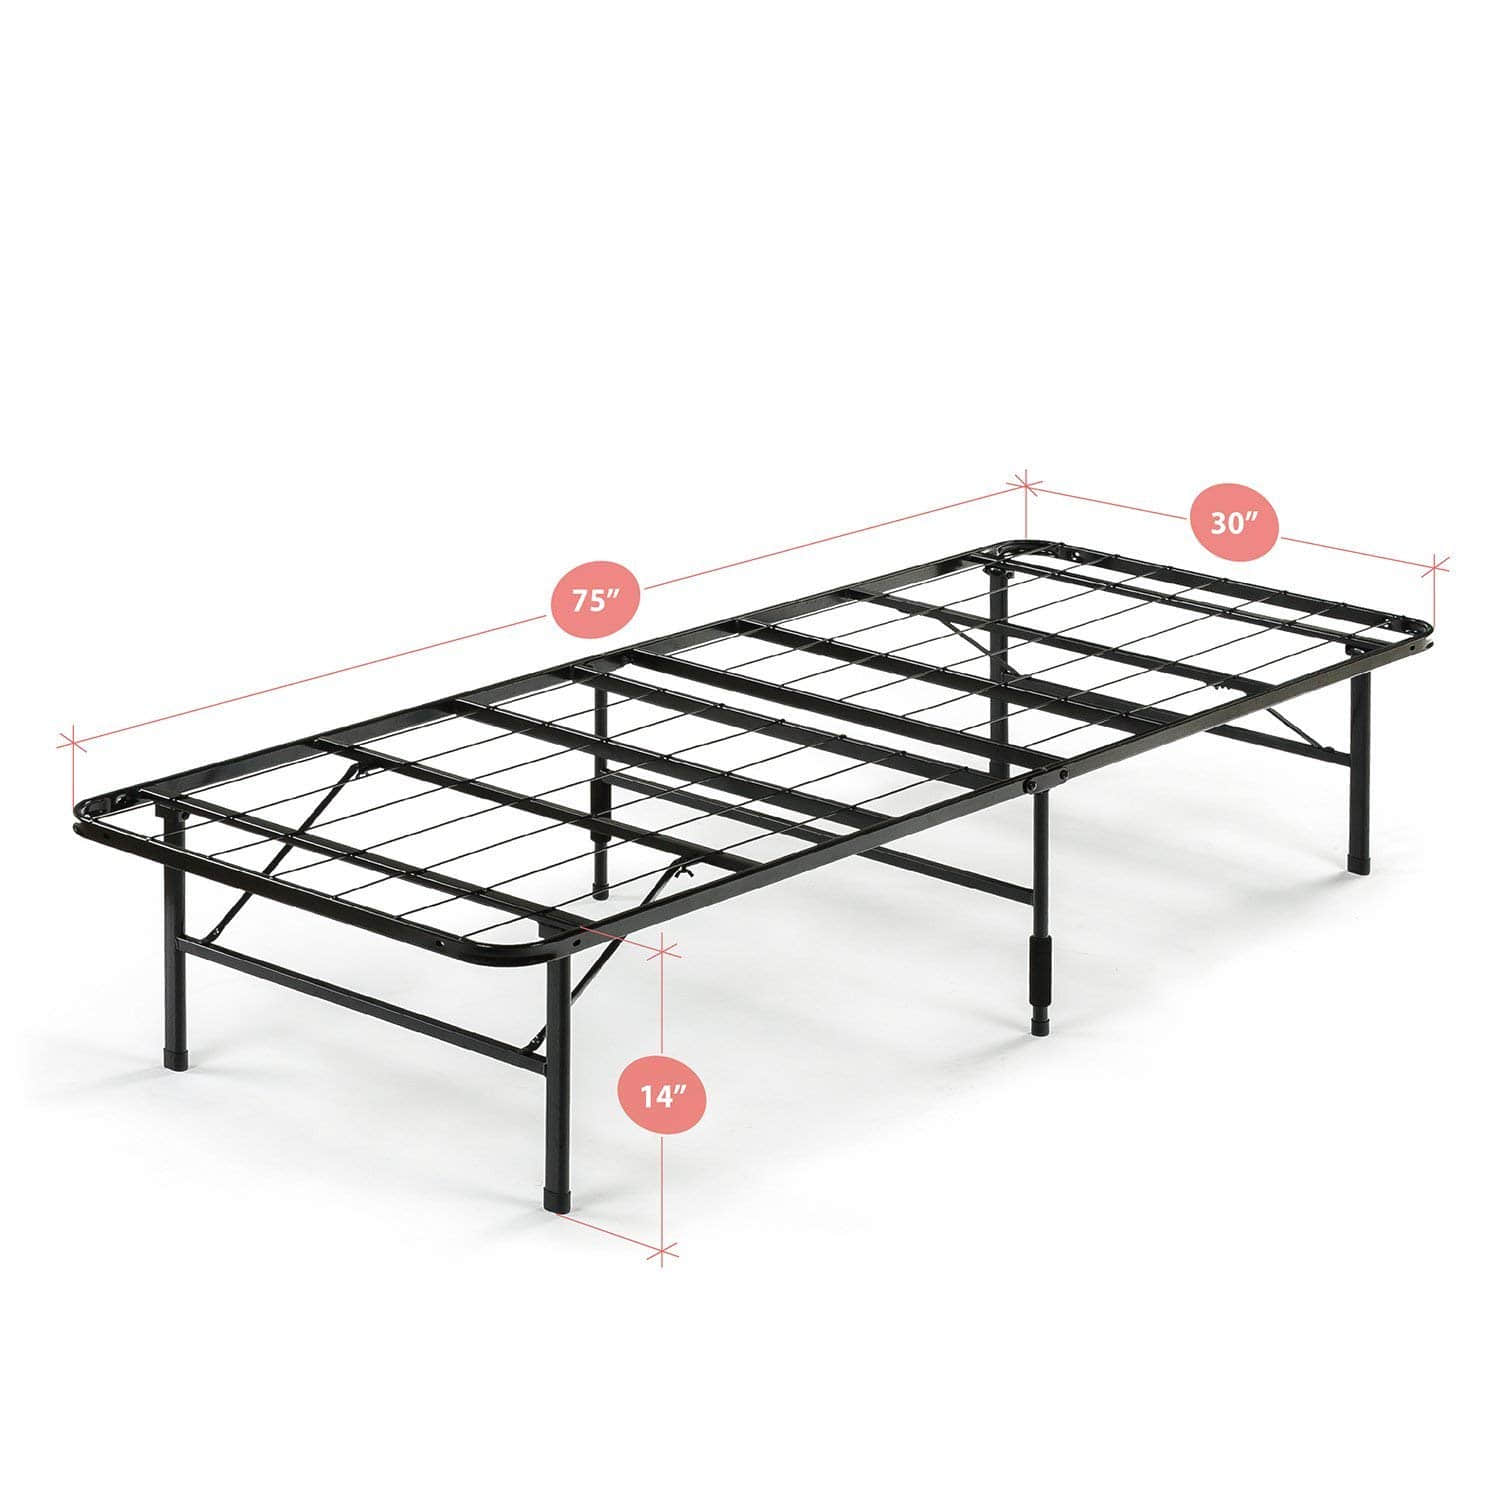 14 Inch Smartbase Mattress Foundation Cot Size 30 X 75